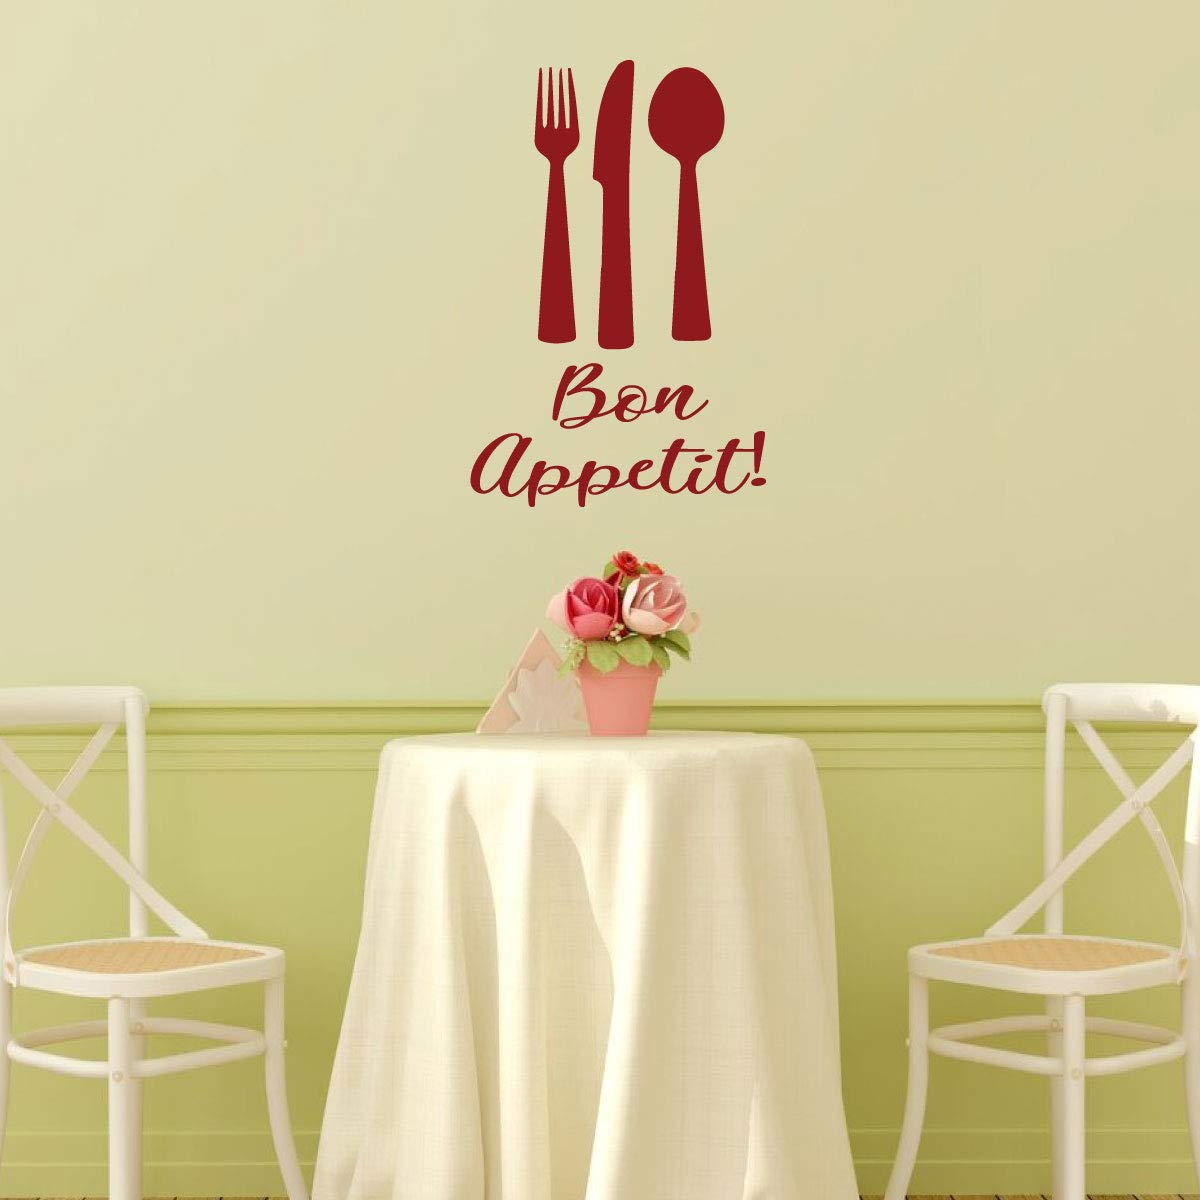 Amazon.com: Bon Appetit Wall Decal - Kitchen or Restaurant Themed ...